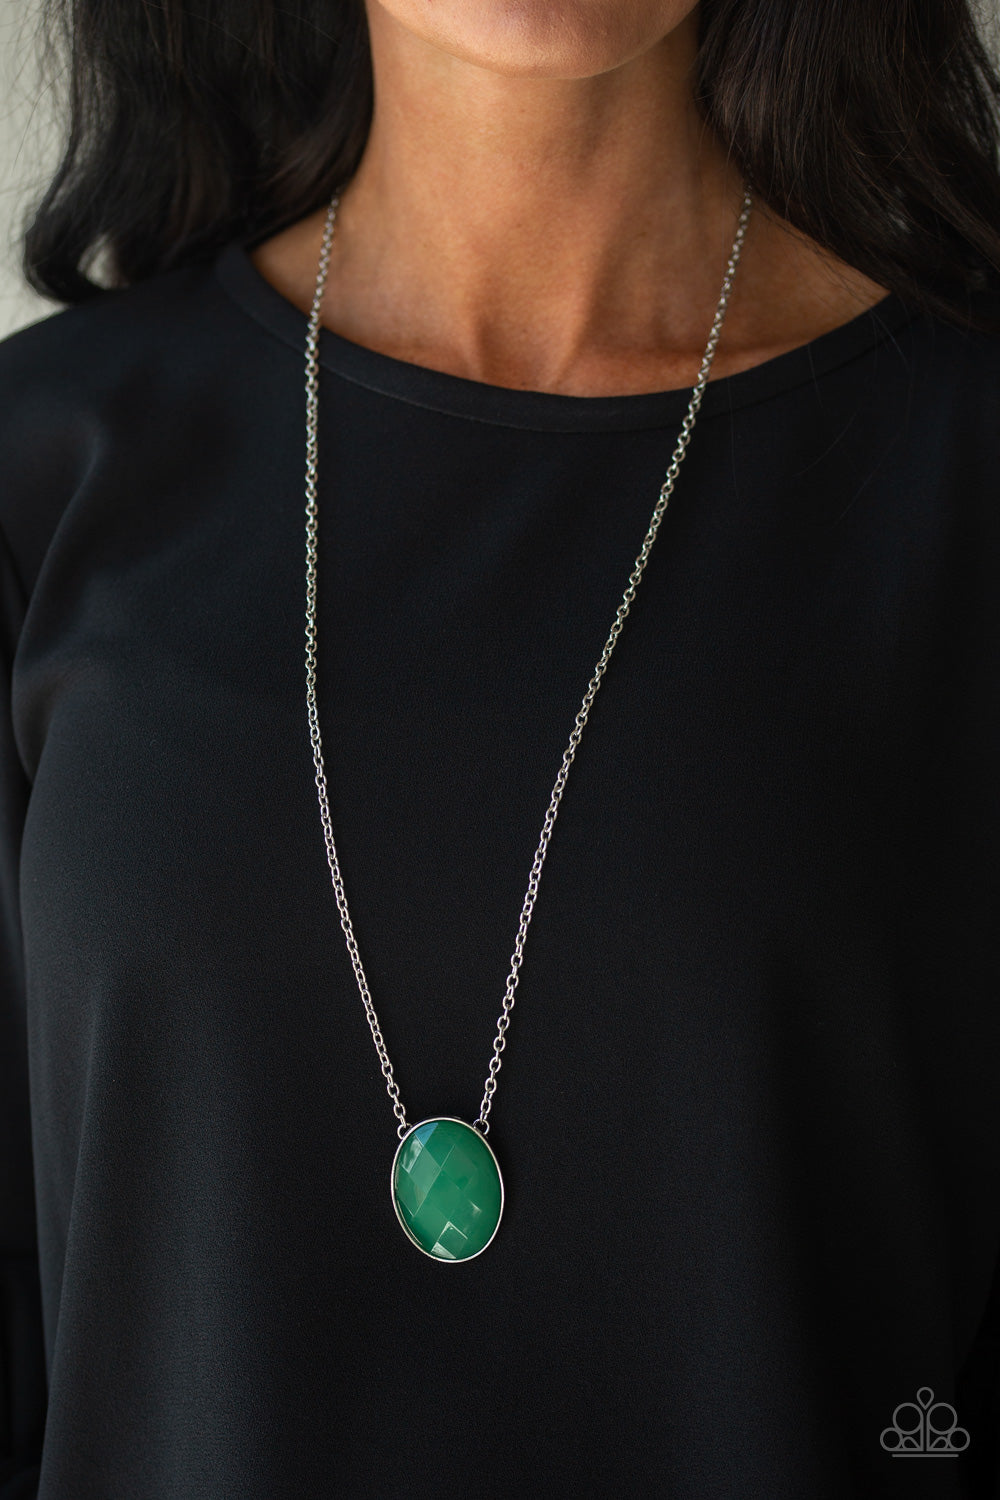 Paparazzi Intensely Illuminated - Green Necklace New